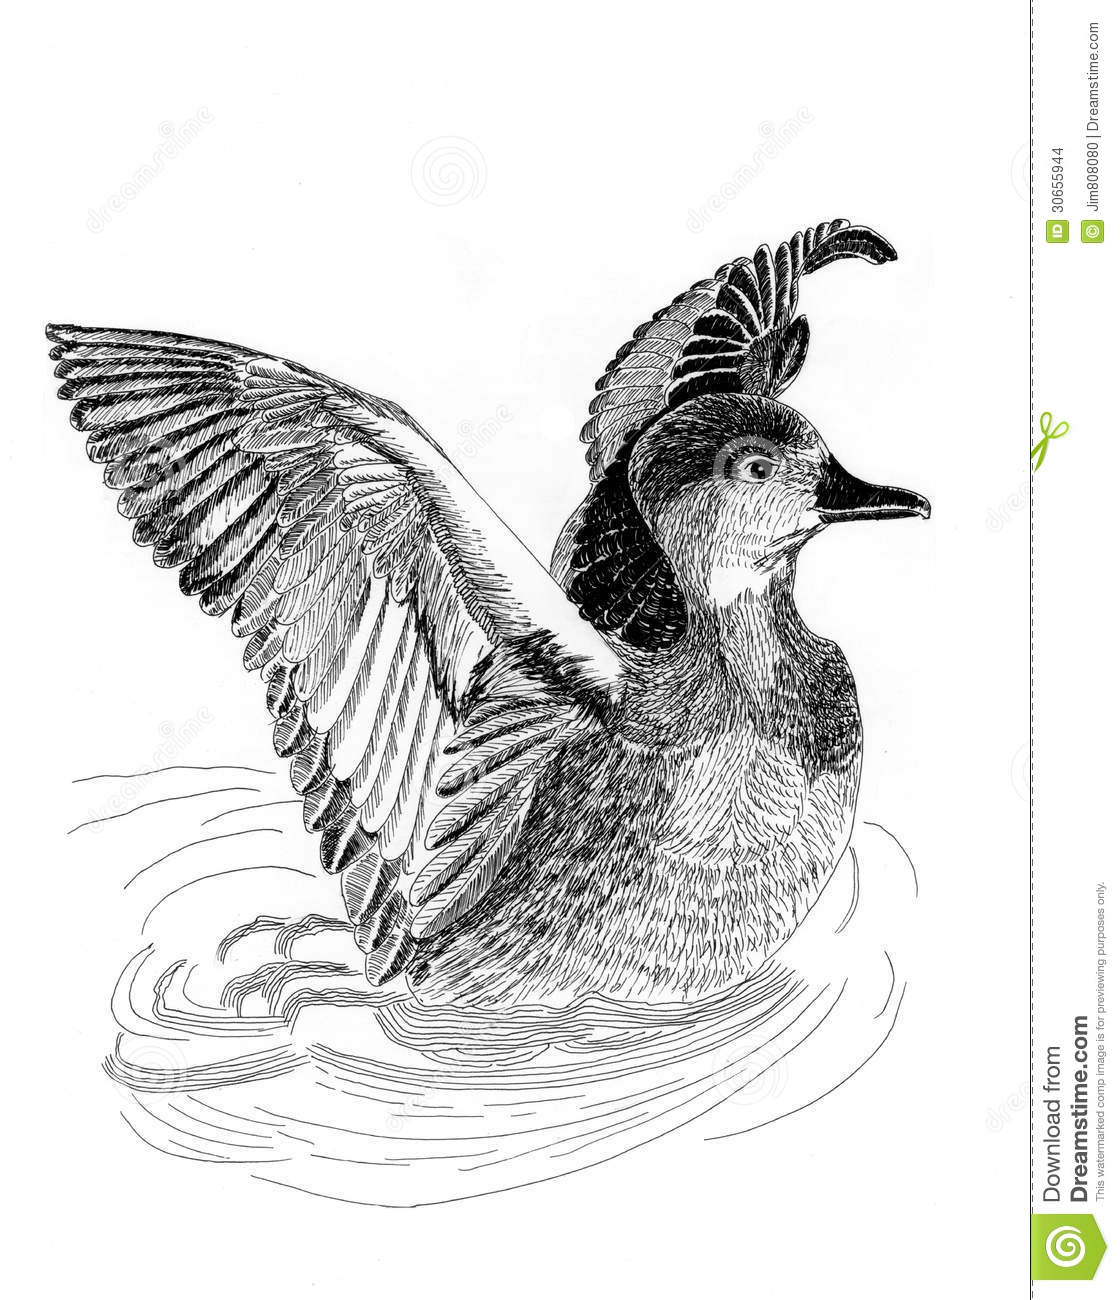 Wild Ducks Illustrantion Sketch Painting Stock Illustration - Illustration Of Funny Duck 30655944